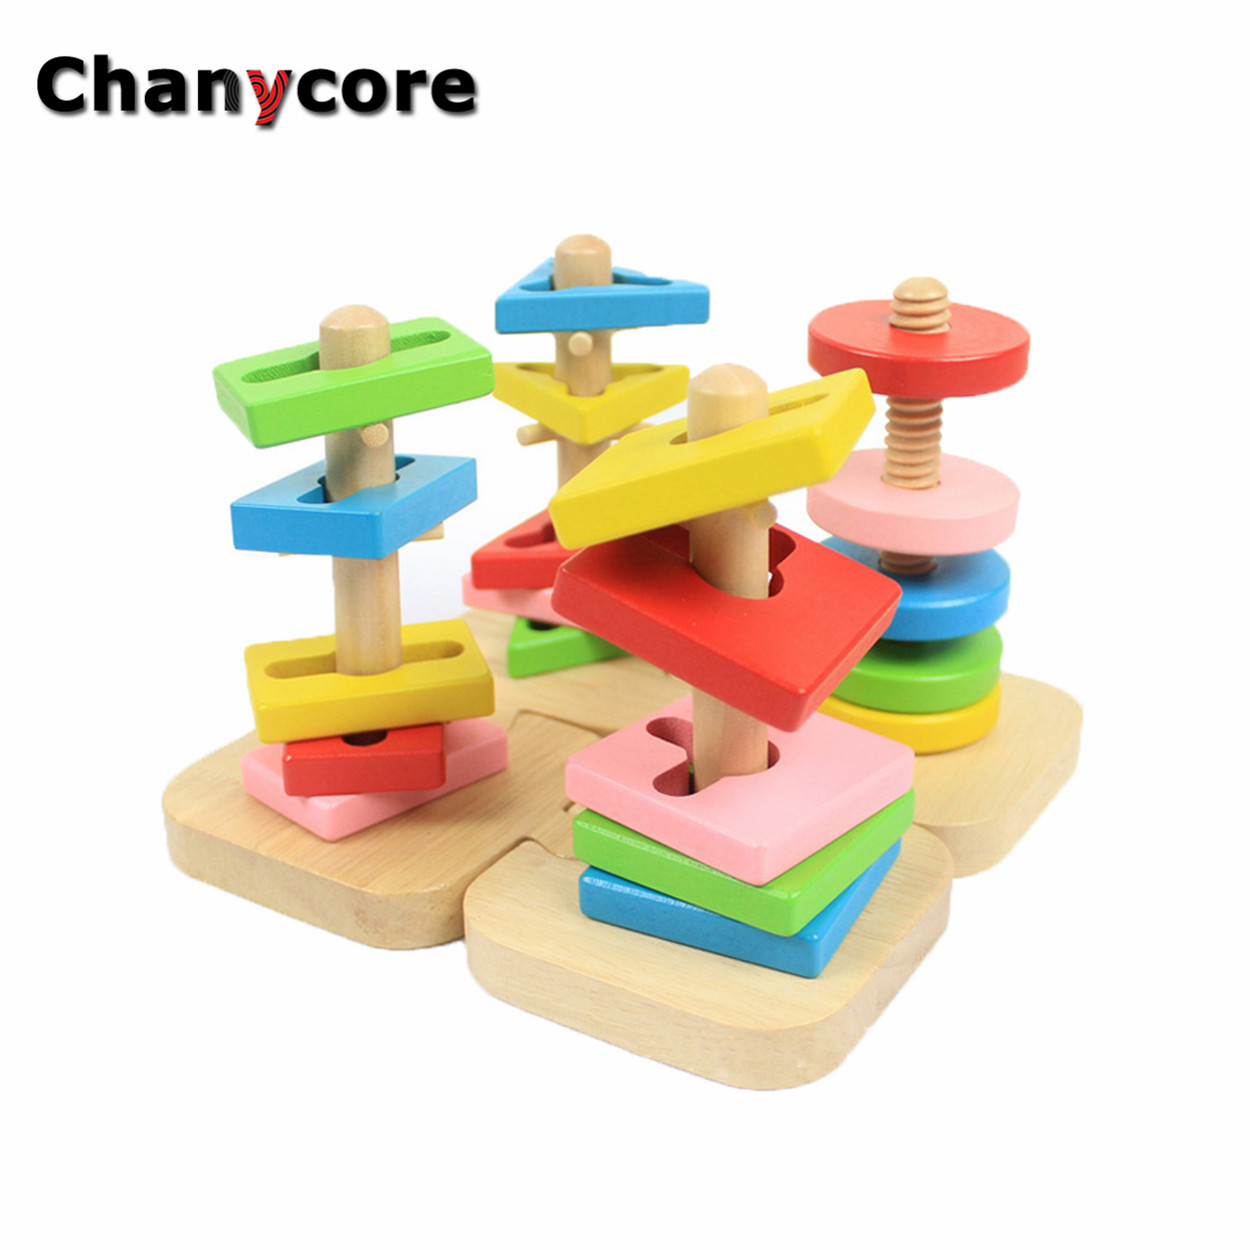 Baby Learning Educational Wooden Toys Geometric Shape Blocks Column Board Sorting Matching ww Montessori Kids Gifts 4102